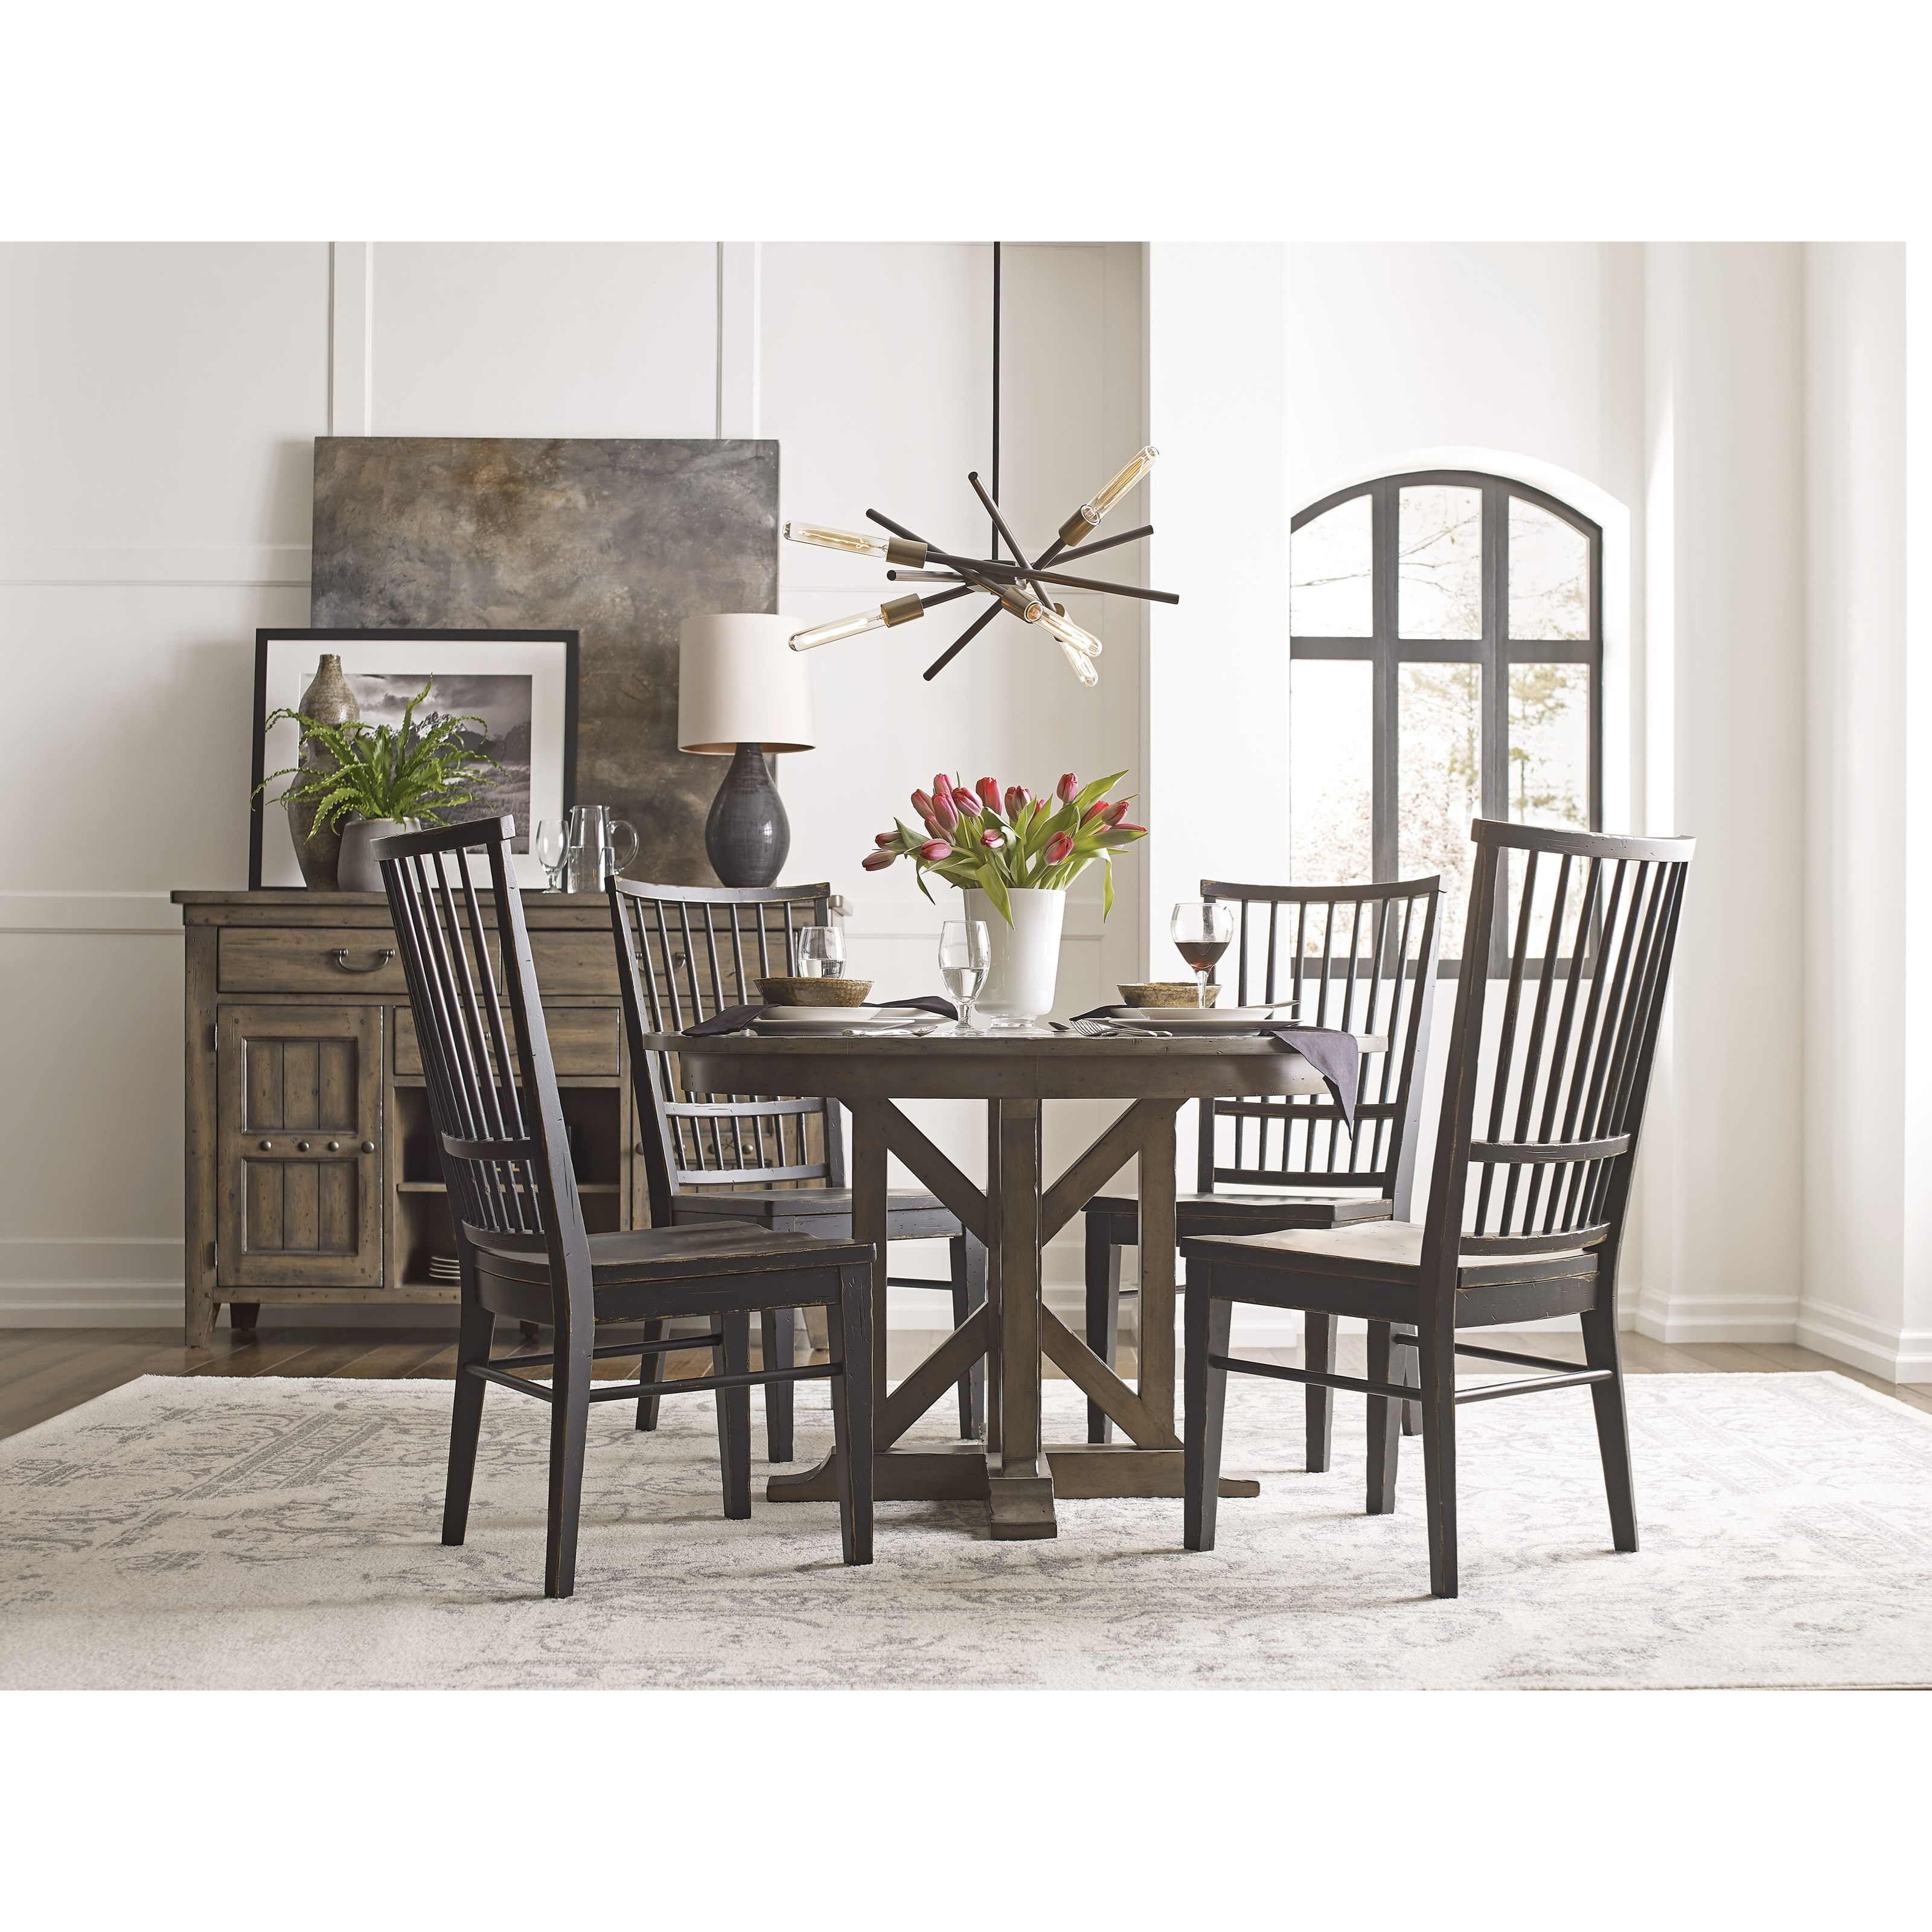 Mill House Casual Dining Room Group by Kincaid Furniture at Jacksonville Furniture Mart